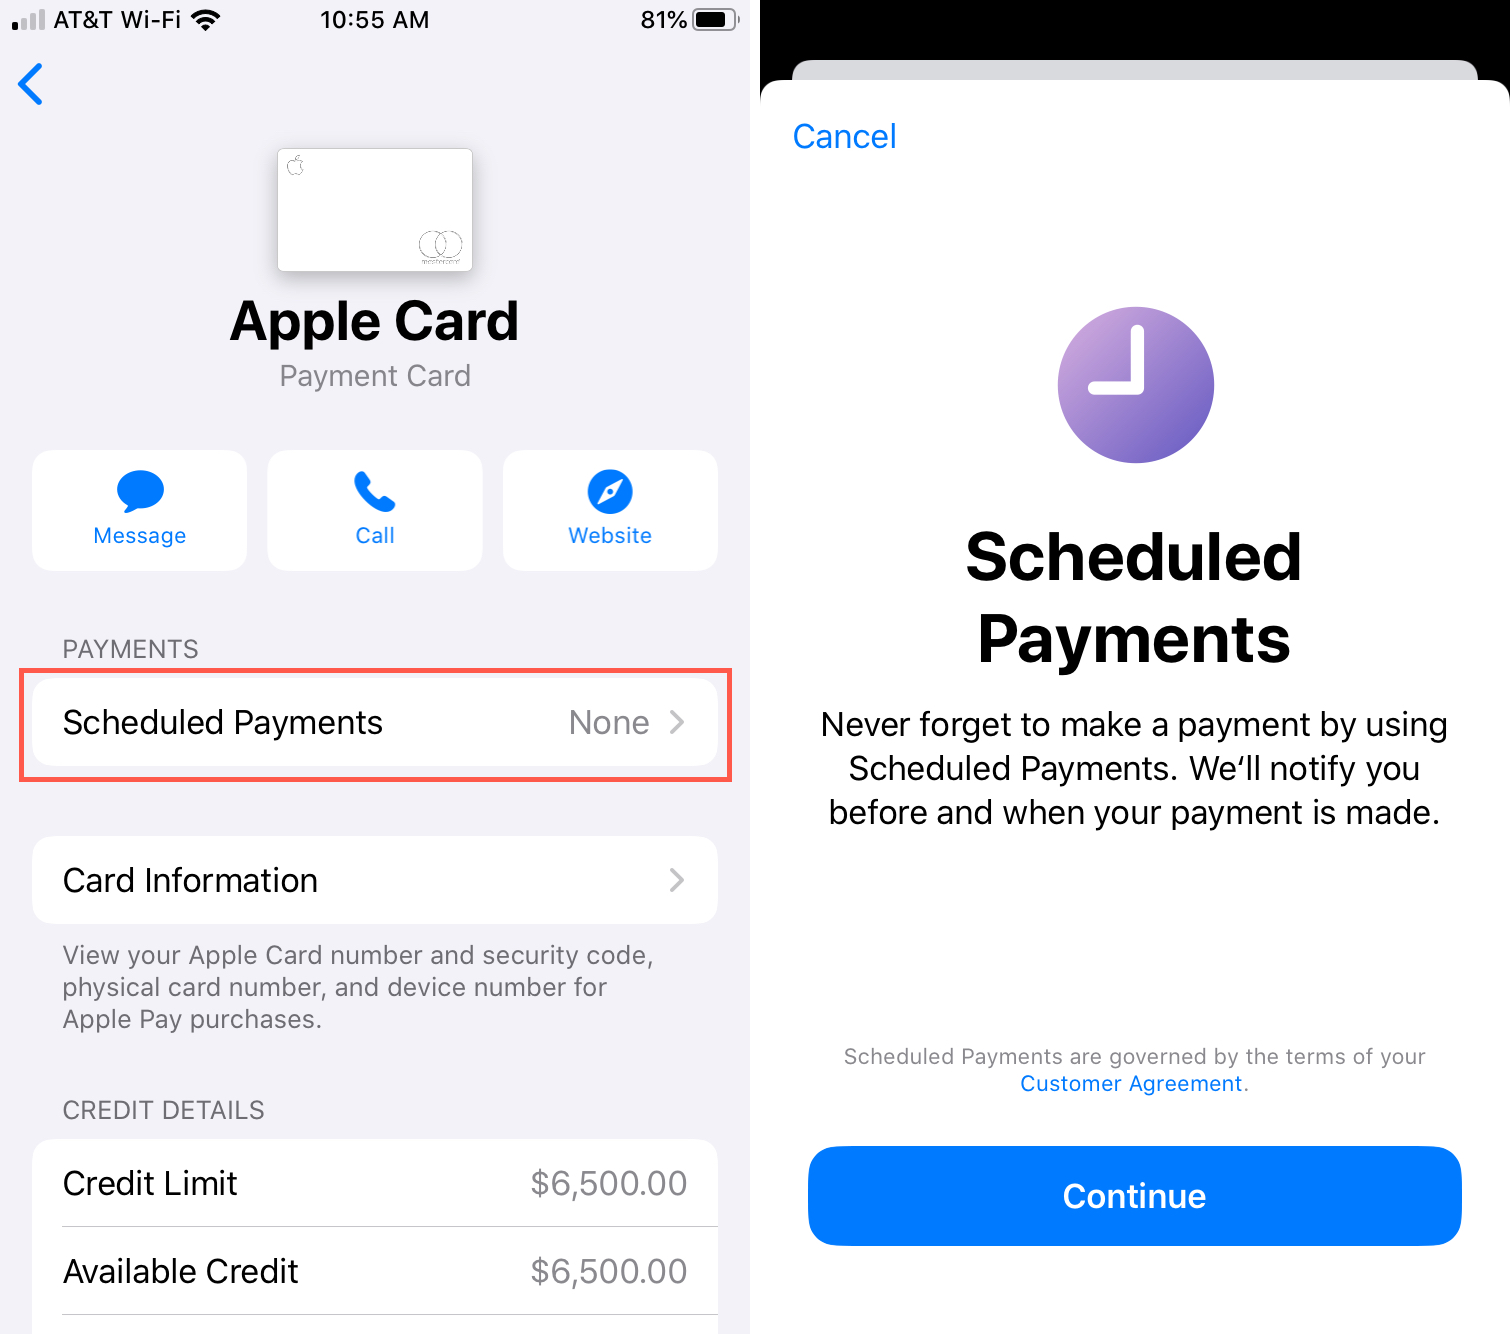 Setup Scheduled Payments for Apple Card